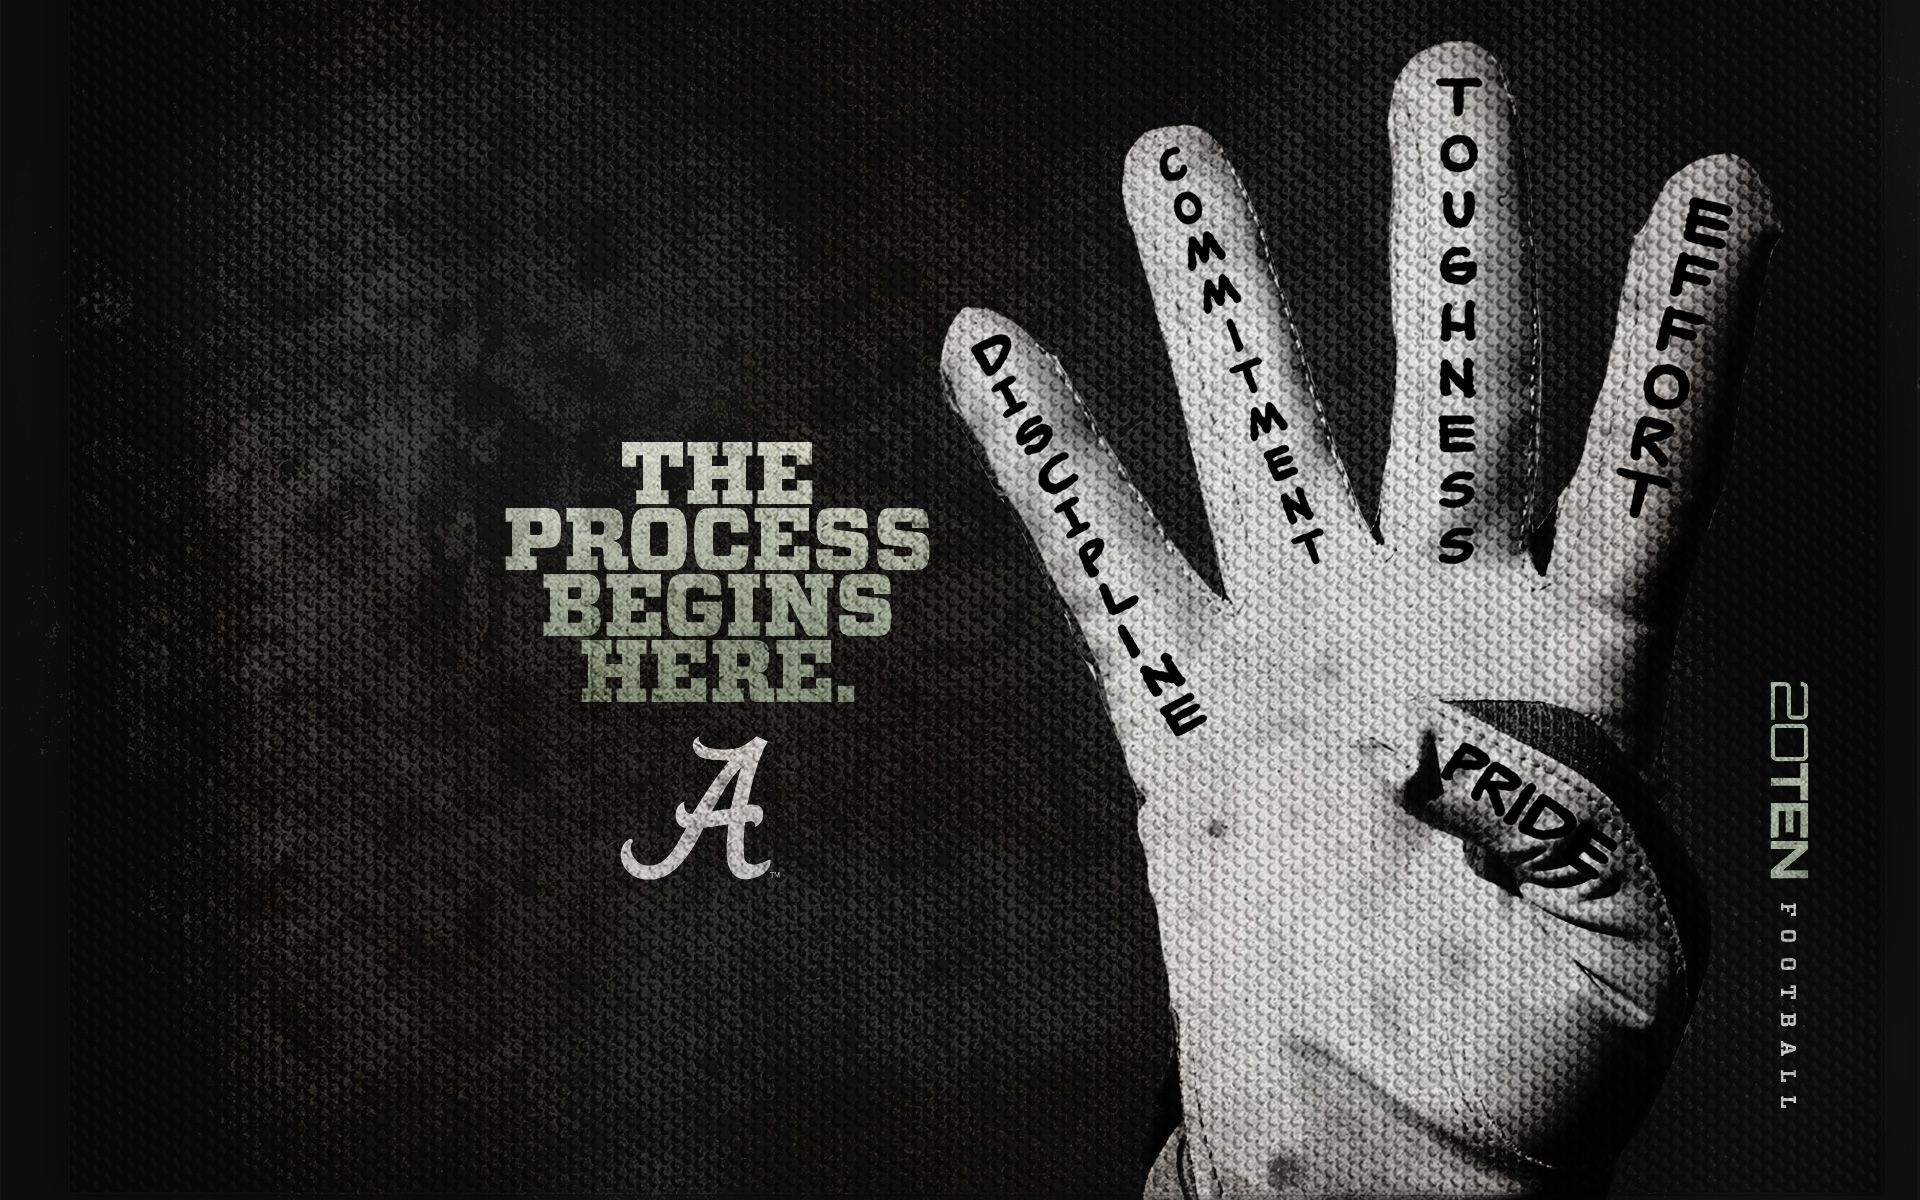 2015 cool alabama football backgrounds - wallpaper cave | images